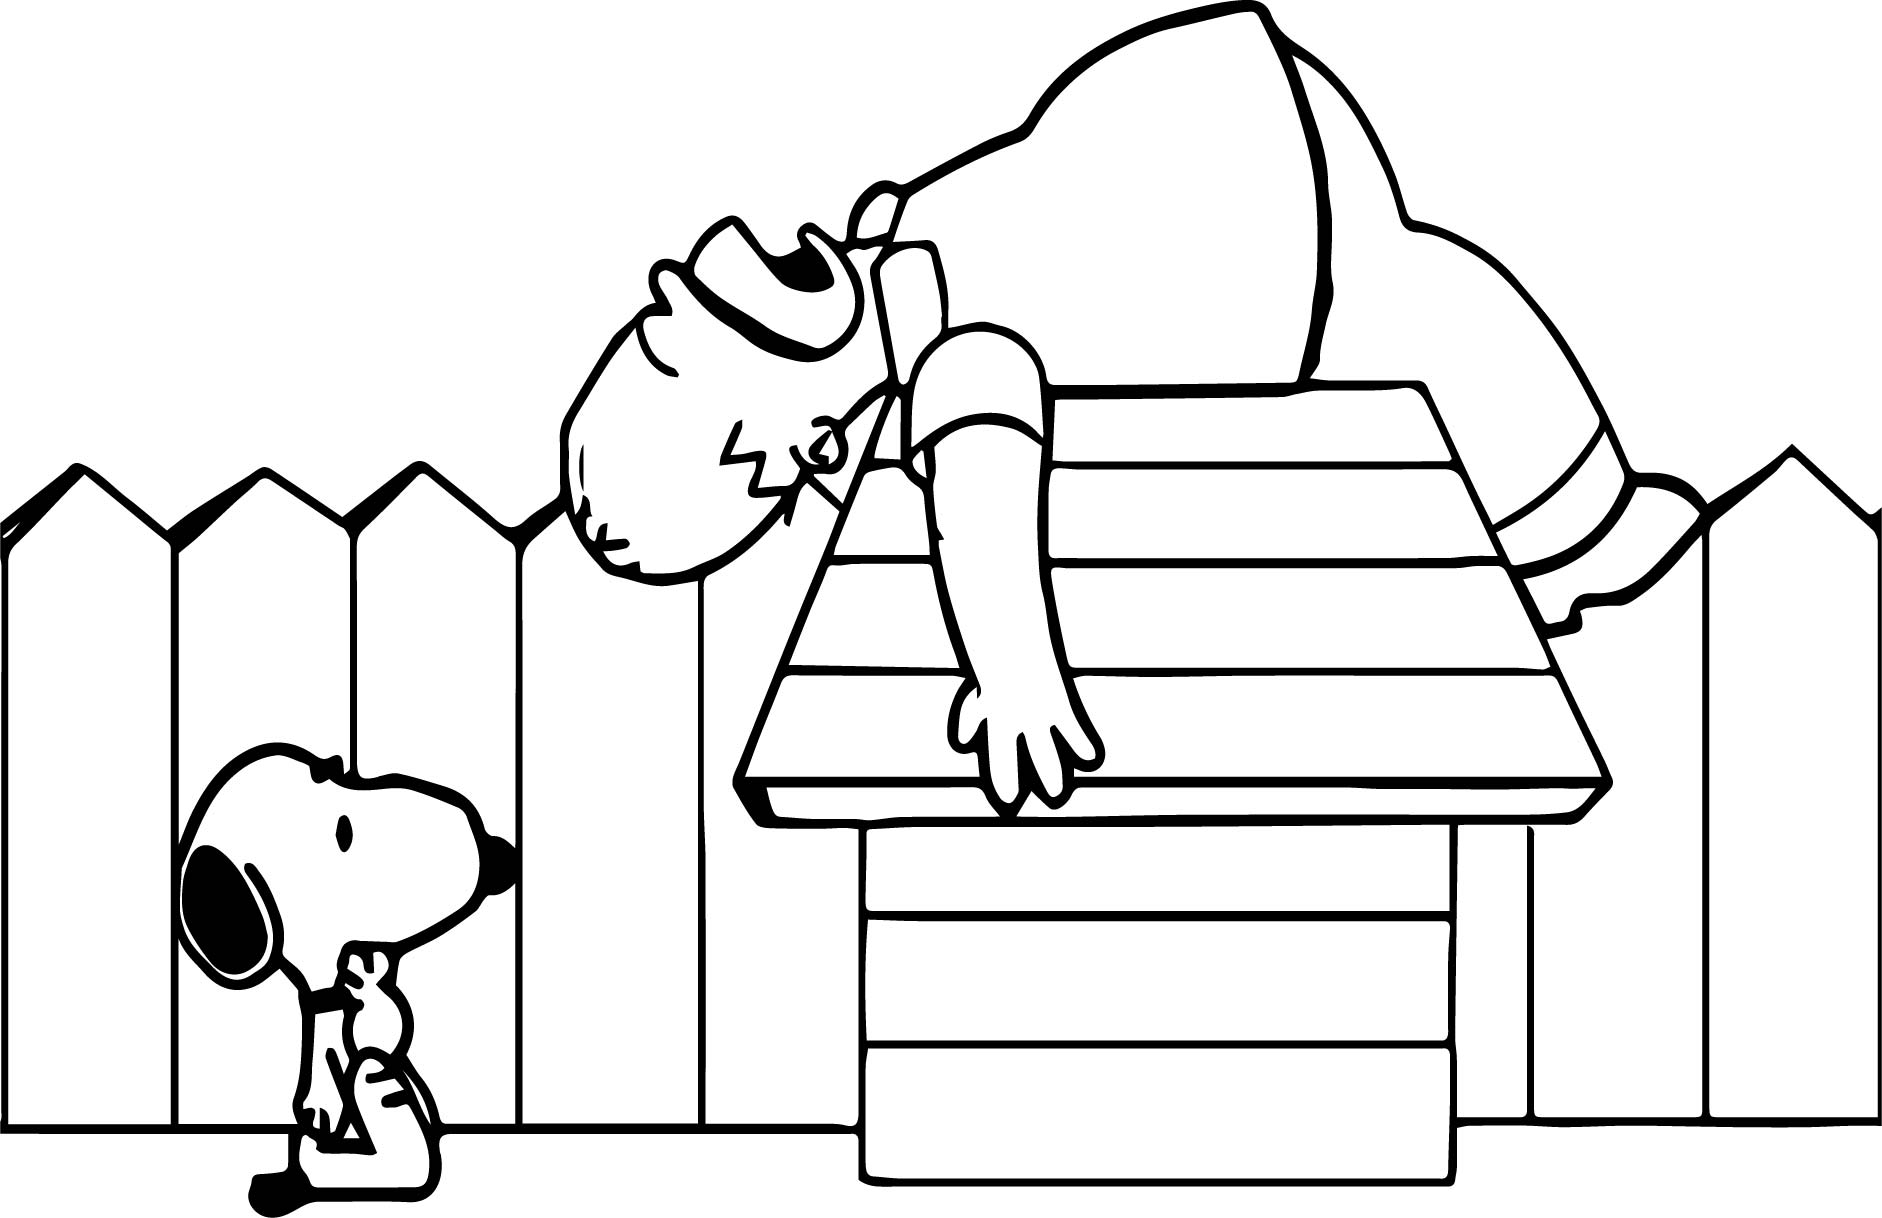 Snoopy Confuzzled Coloring Page